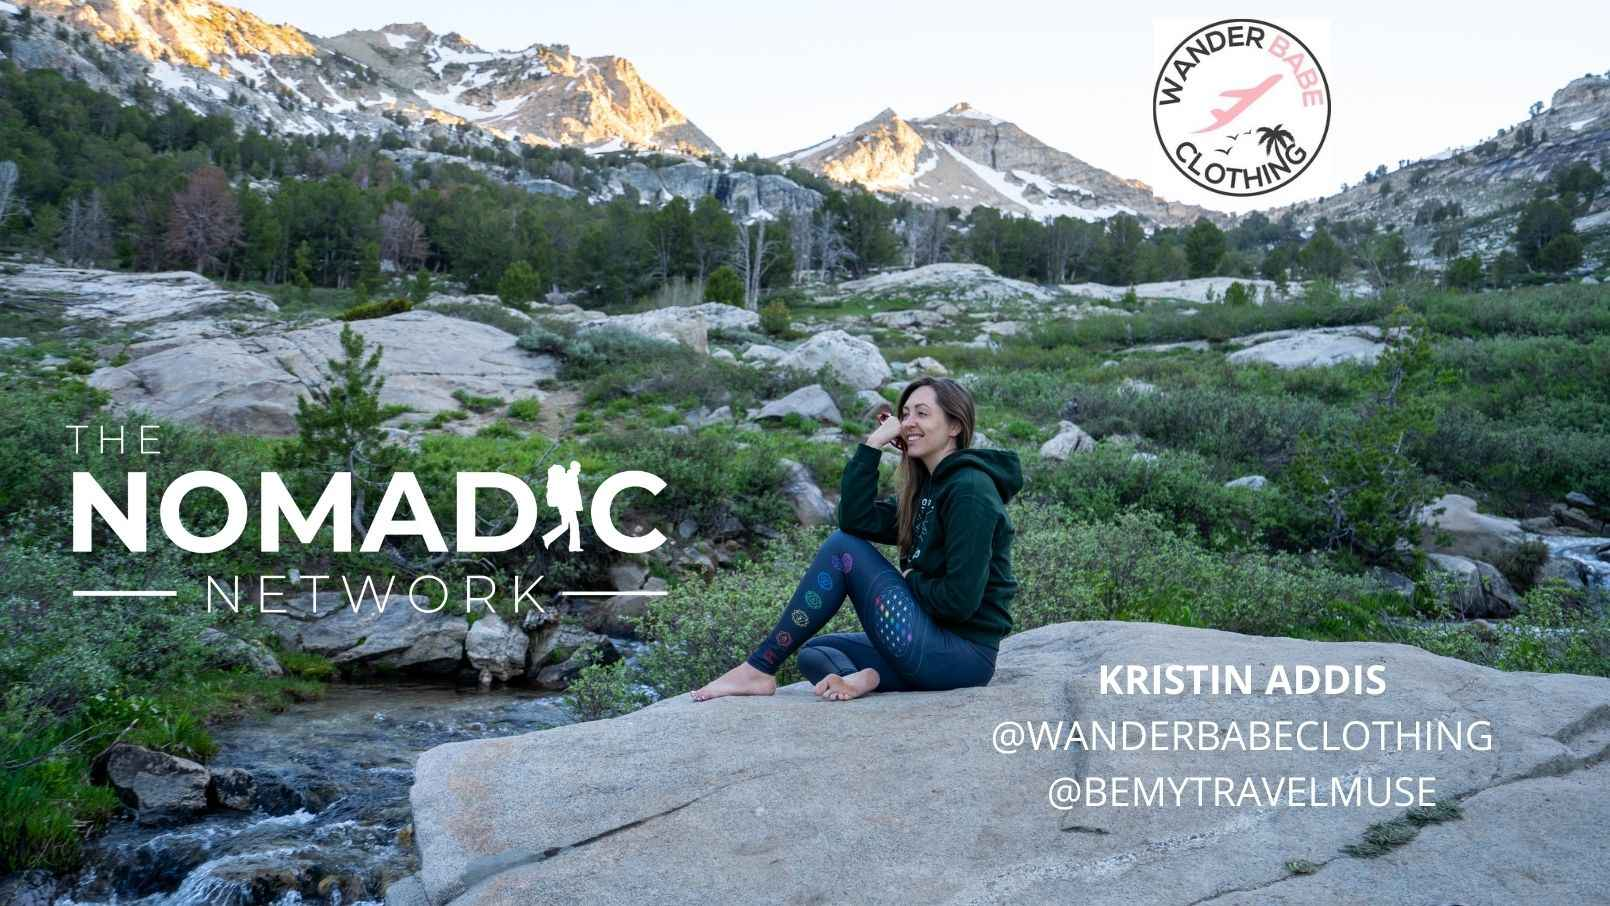 Kristin Addiss from Be My Travel Muse